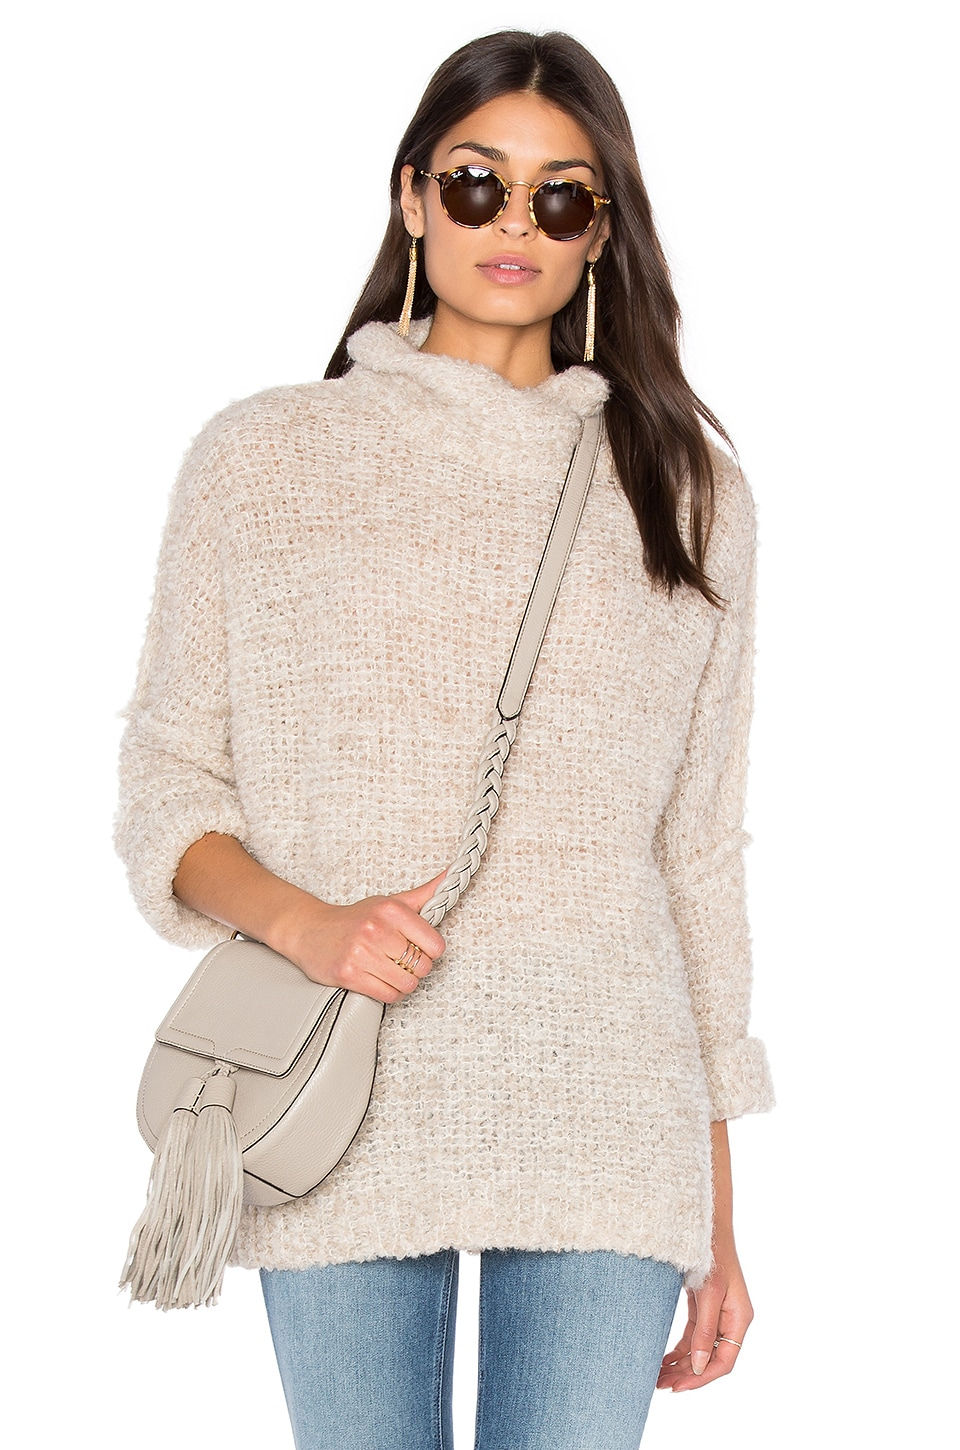 She's All That Sweater by Free People